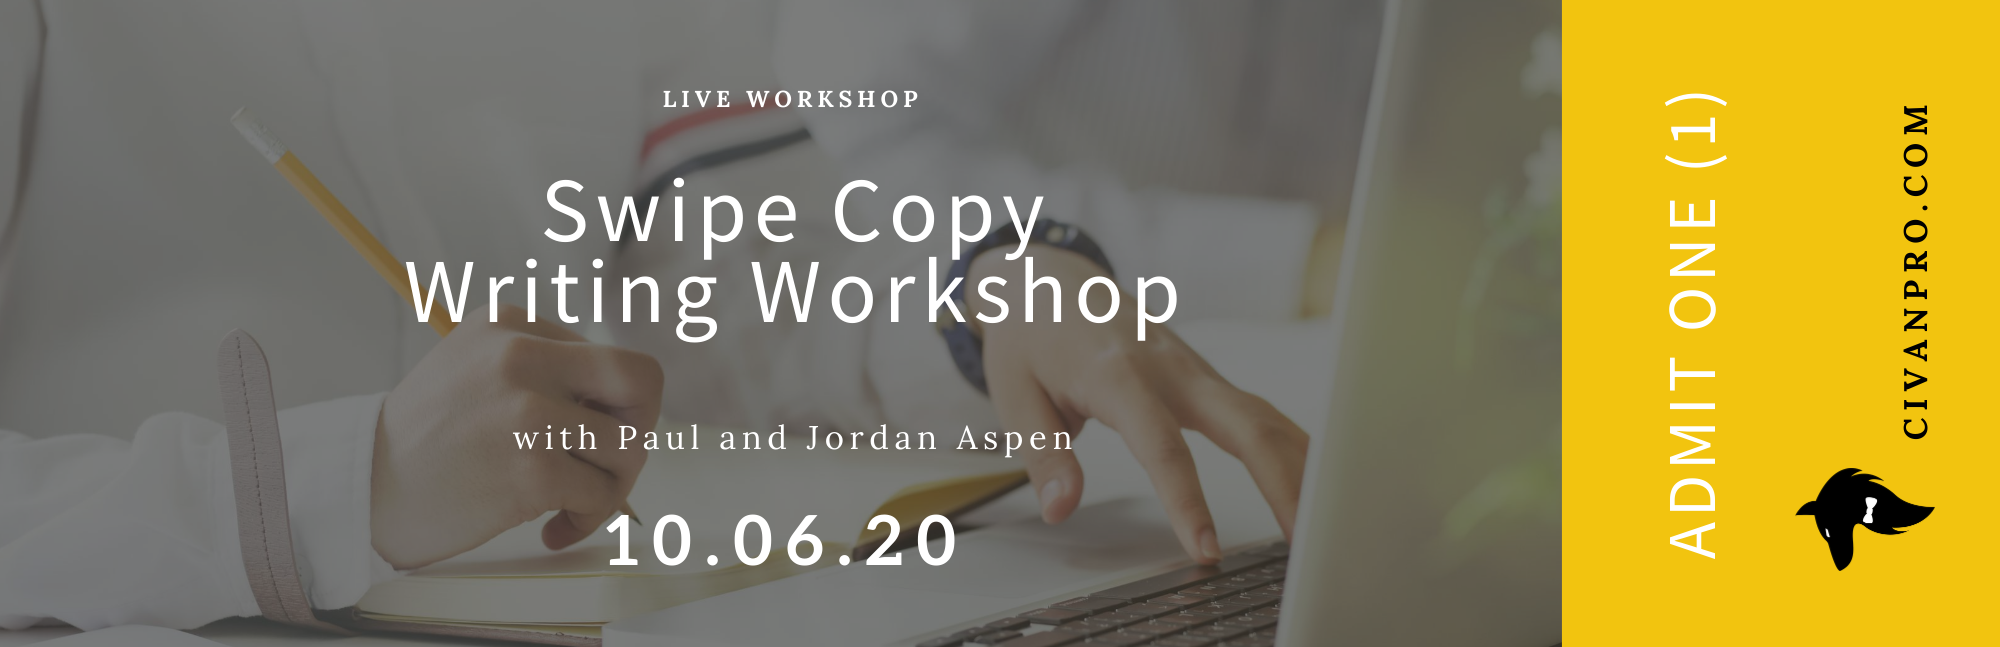 Swipe Copy Writing Workshop